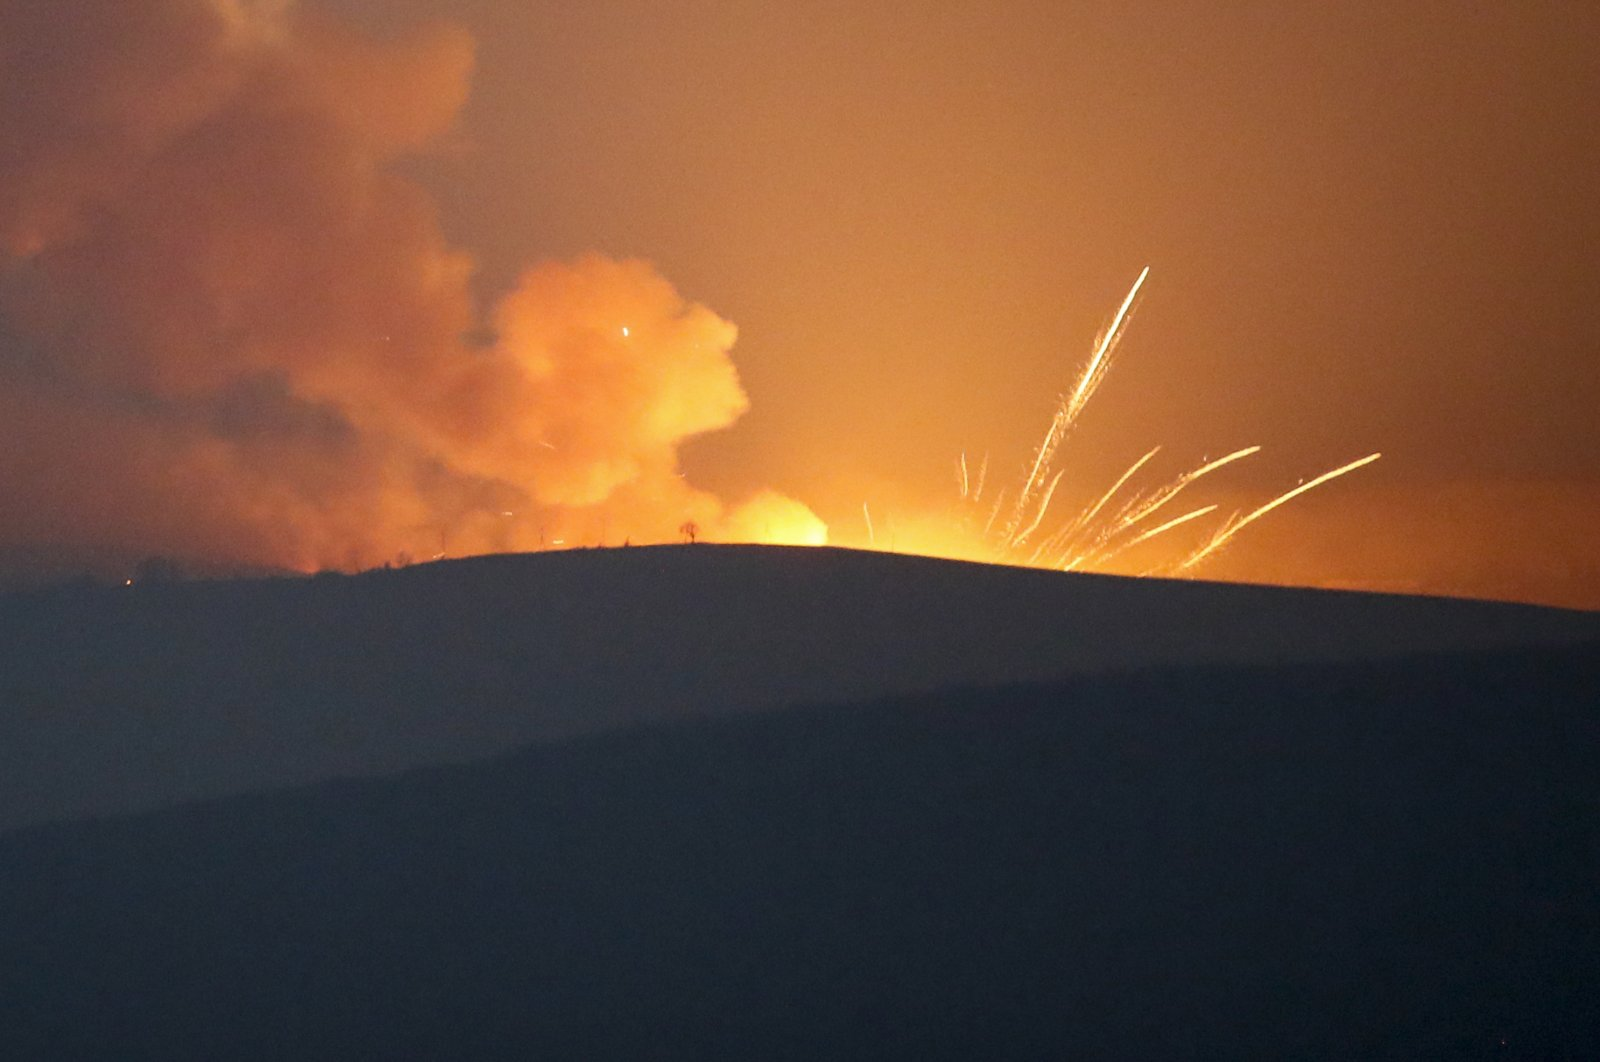 Explosions are seen in the mountains during fighting between Armenian and Azerbaijani forces outside Stepanakert in the occupied region of Nagorno-Karabakh, Azerbaijan, Nov. 1, 2020. (AP Photo)